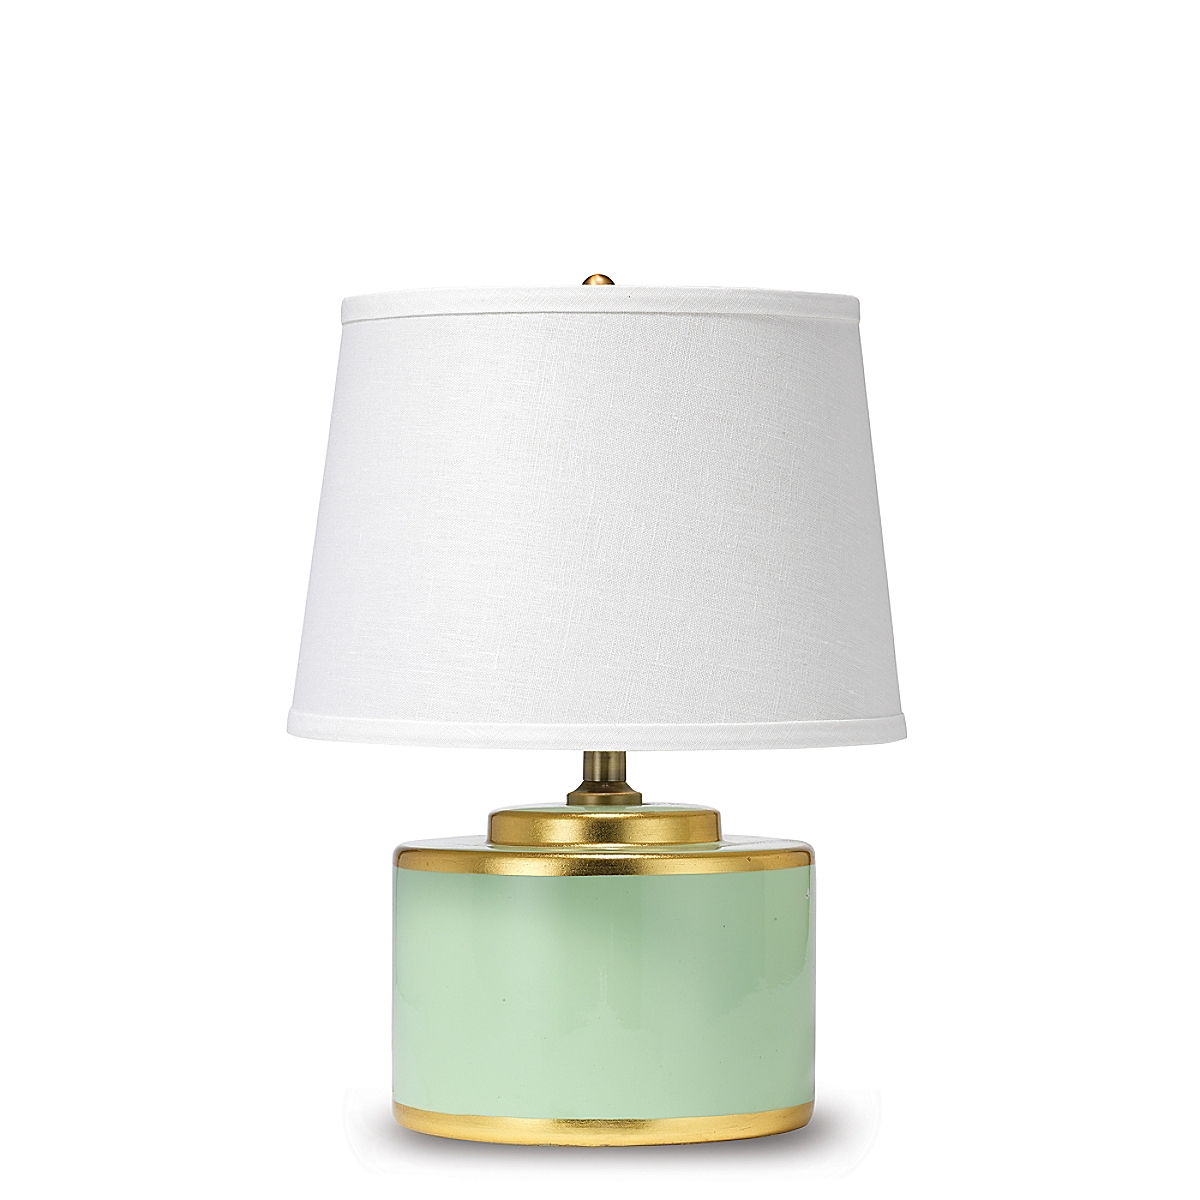 Basin Table Lamp Teal and Gold